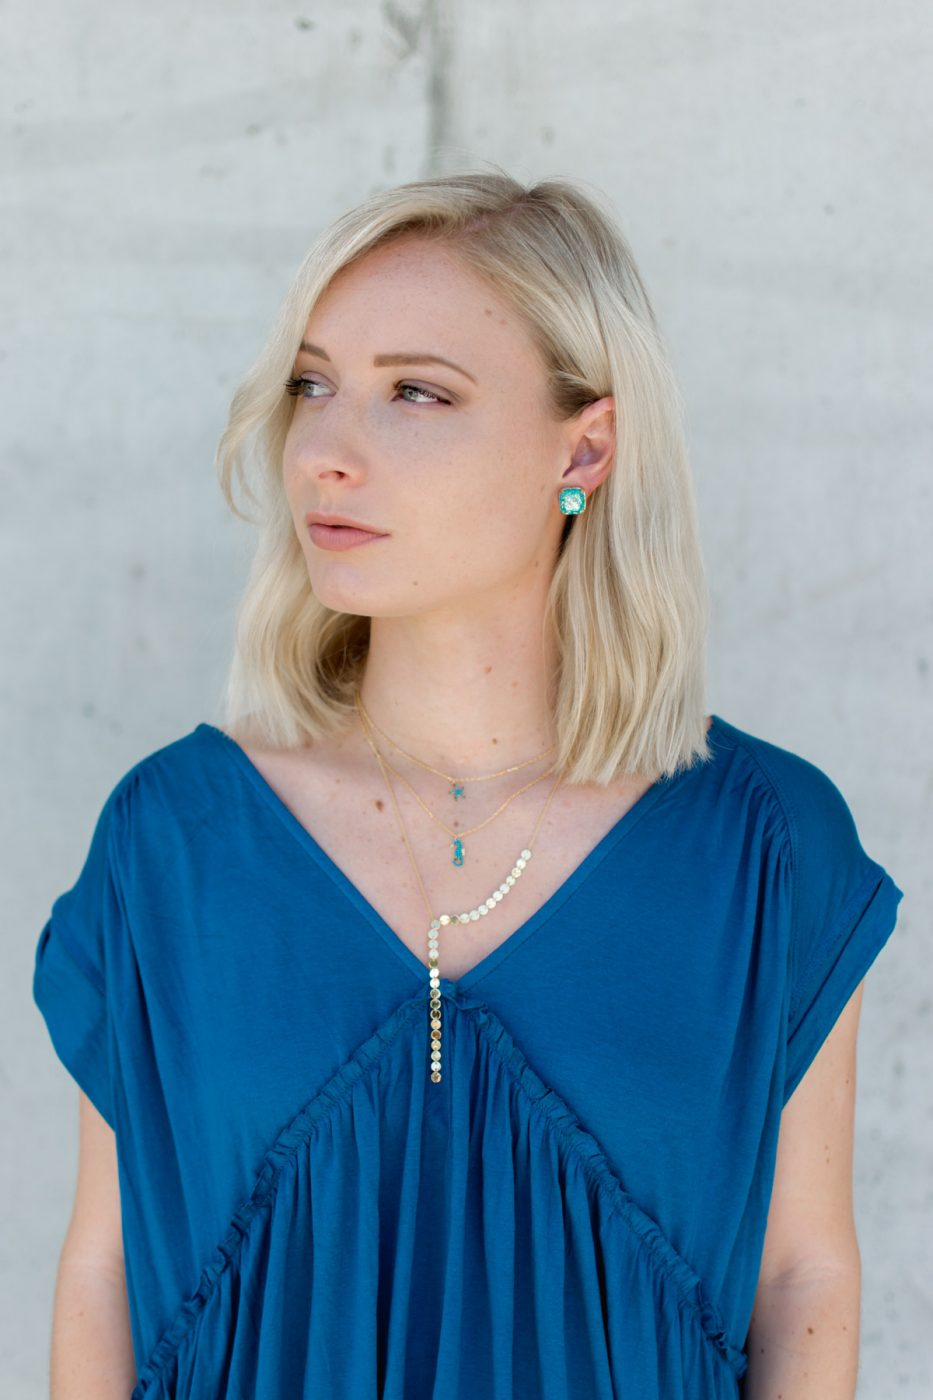 Jenny Bess wearing light blue jewelry and dark blue blouse